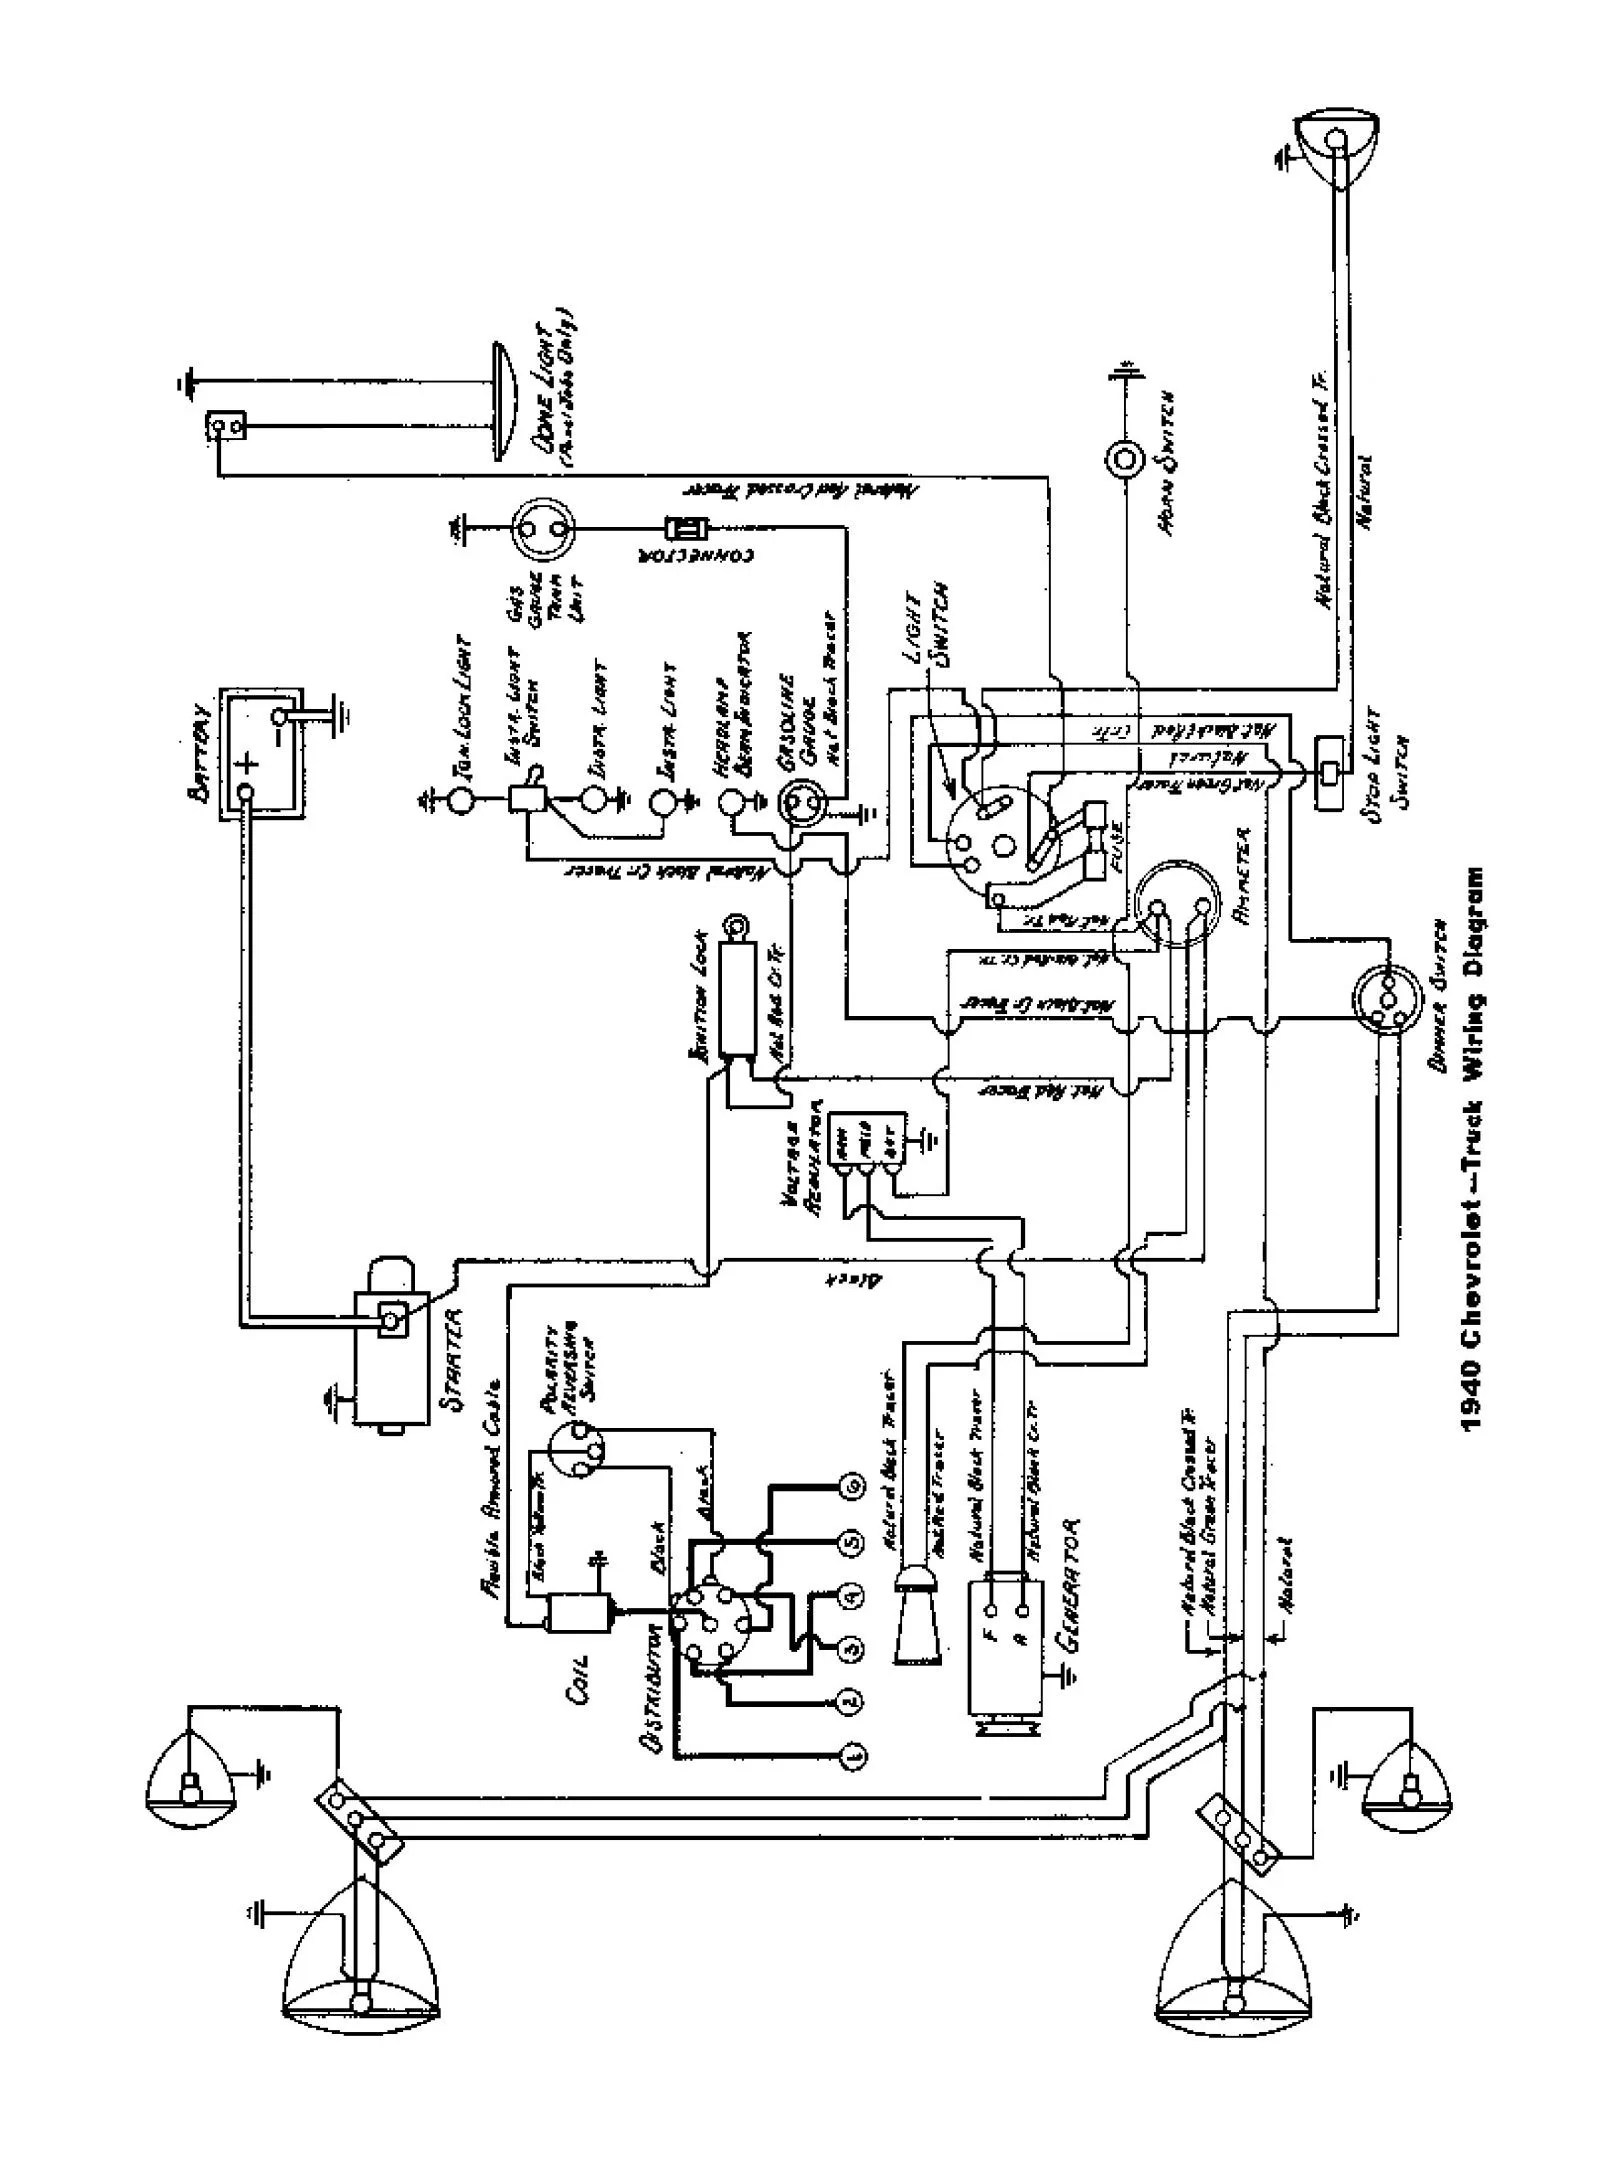 small resolution of epiphone sg g 400 wiring diagram epiphone sgg 400 wiring diagram ls fuse box diagram